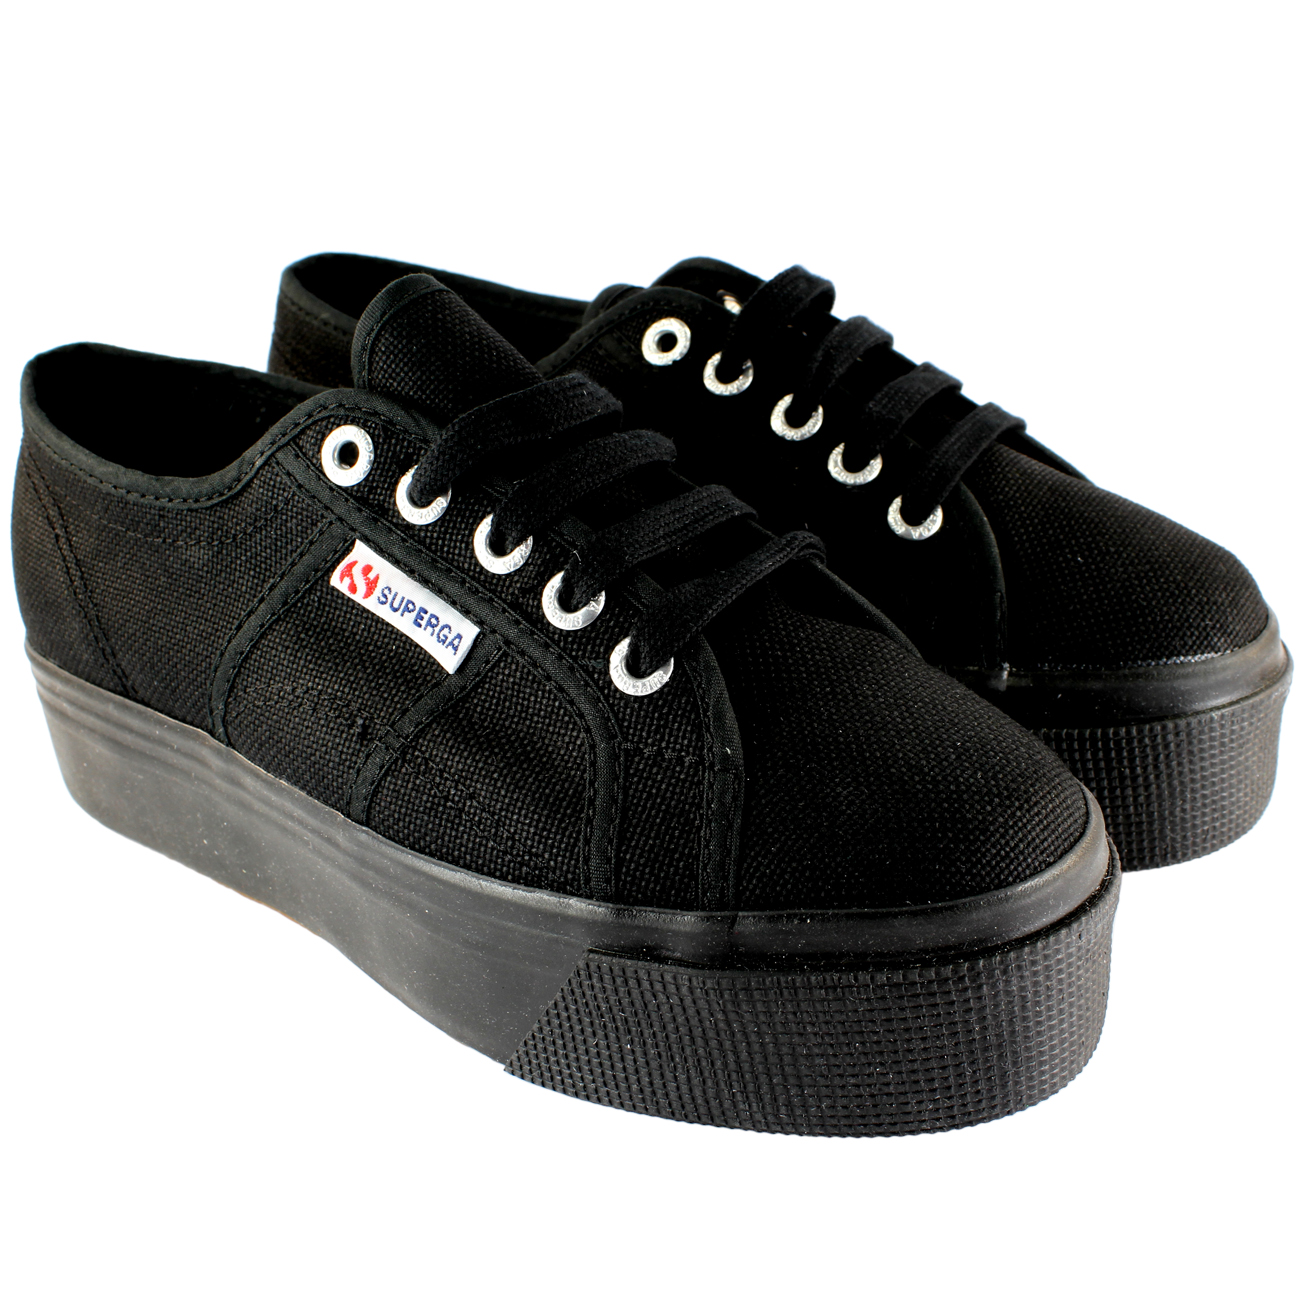 Superga 2790 Flatform Trainers